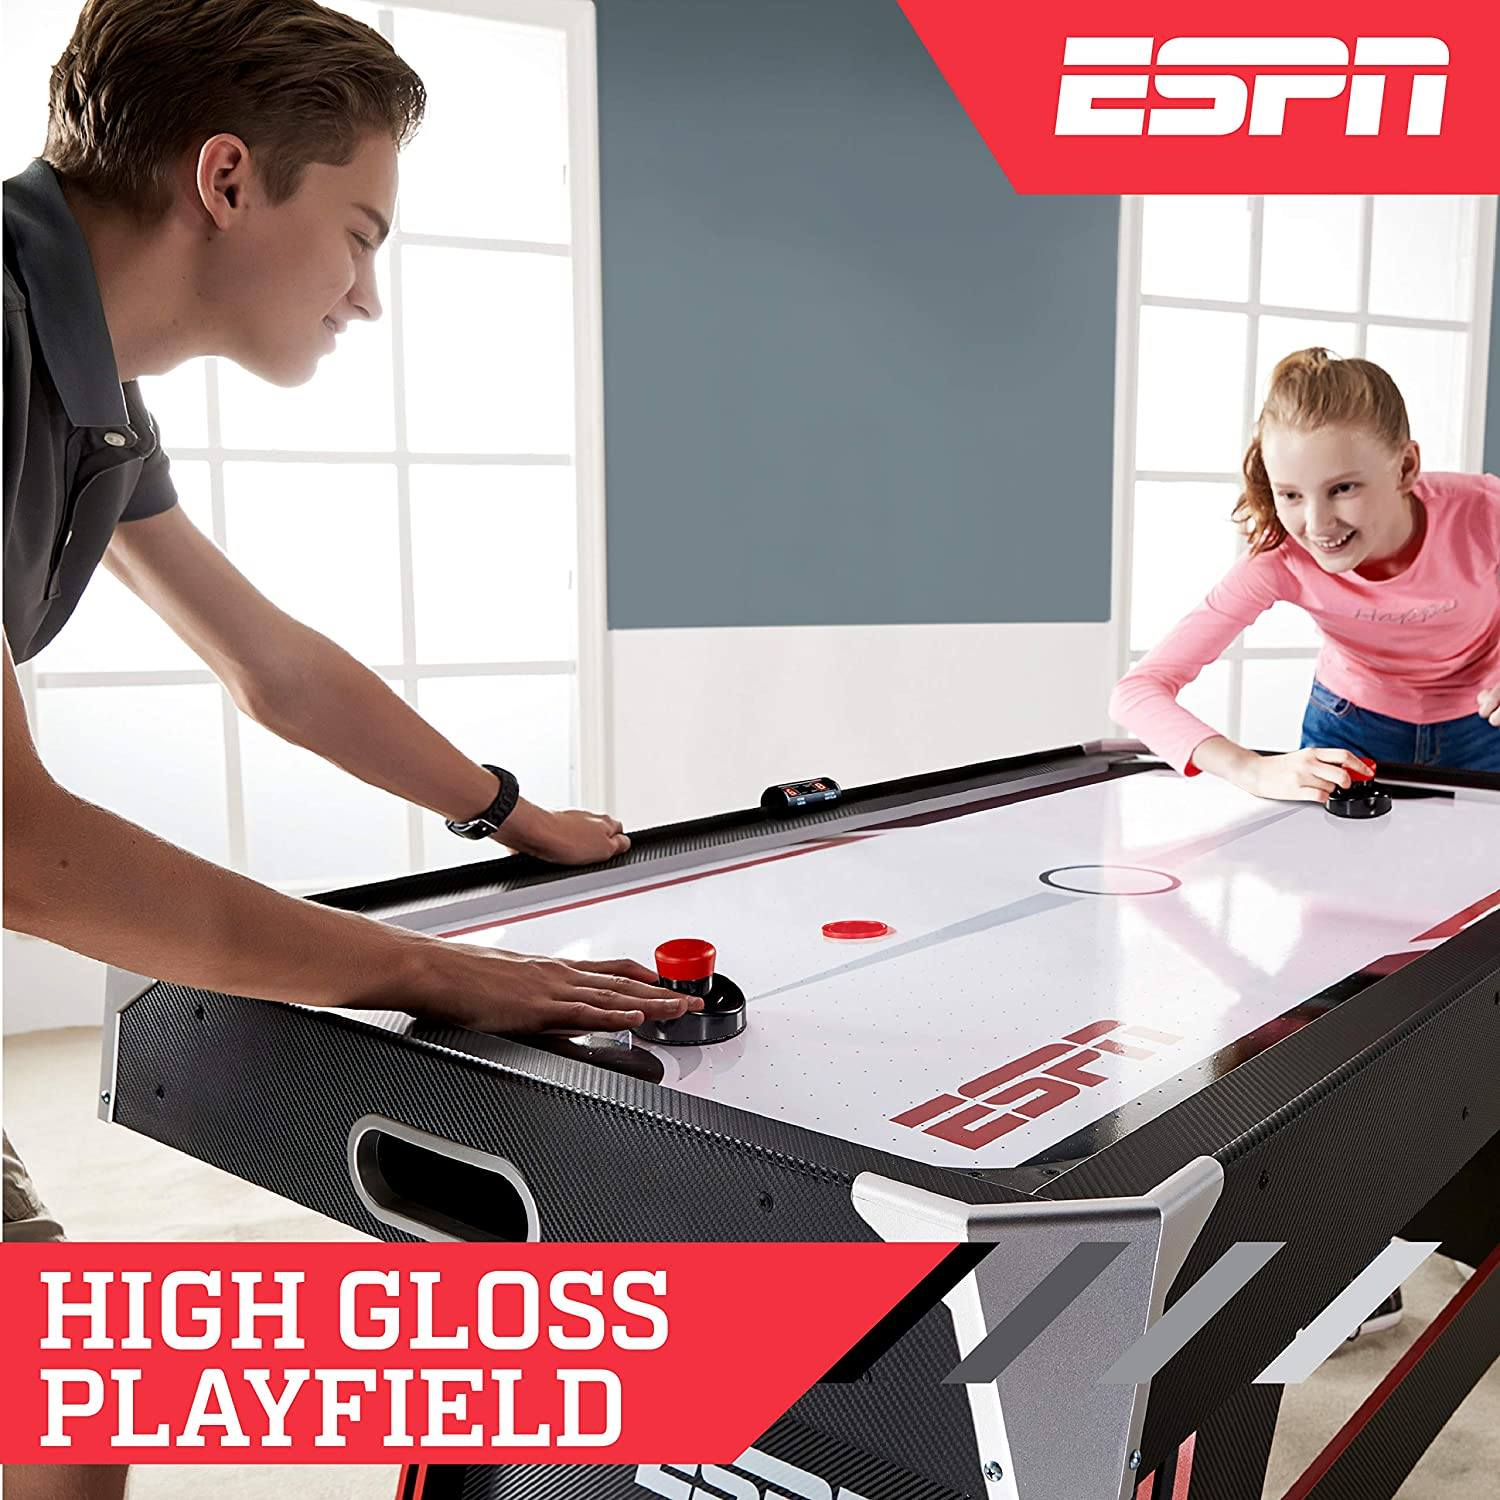 ESPN 5' Air Powered Hockey Table with LED Electronic Features